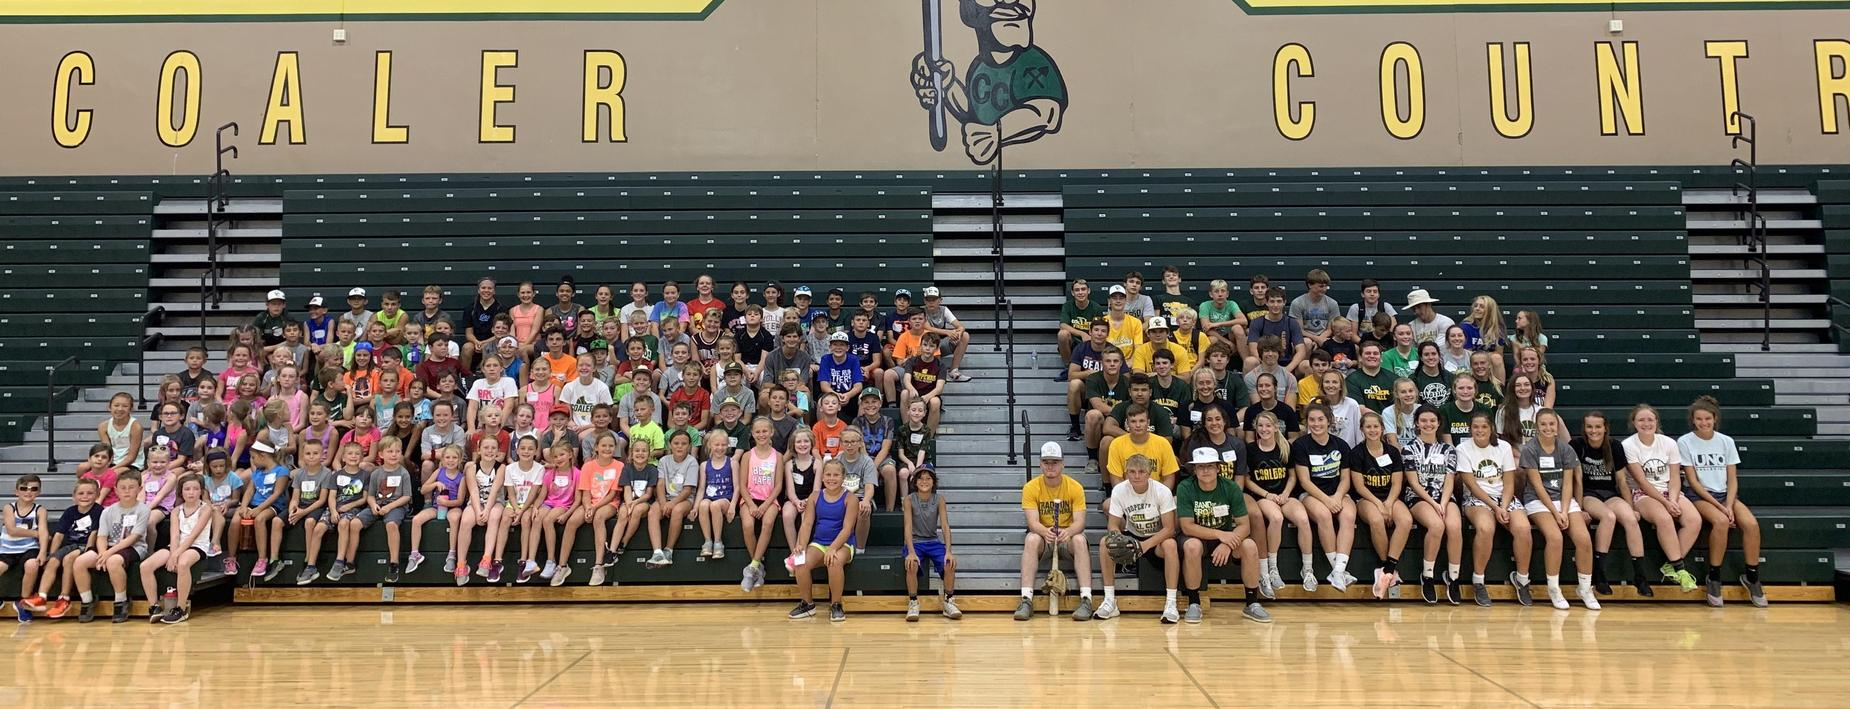 Coalers with Character Summer Camp